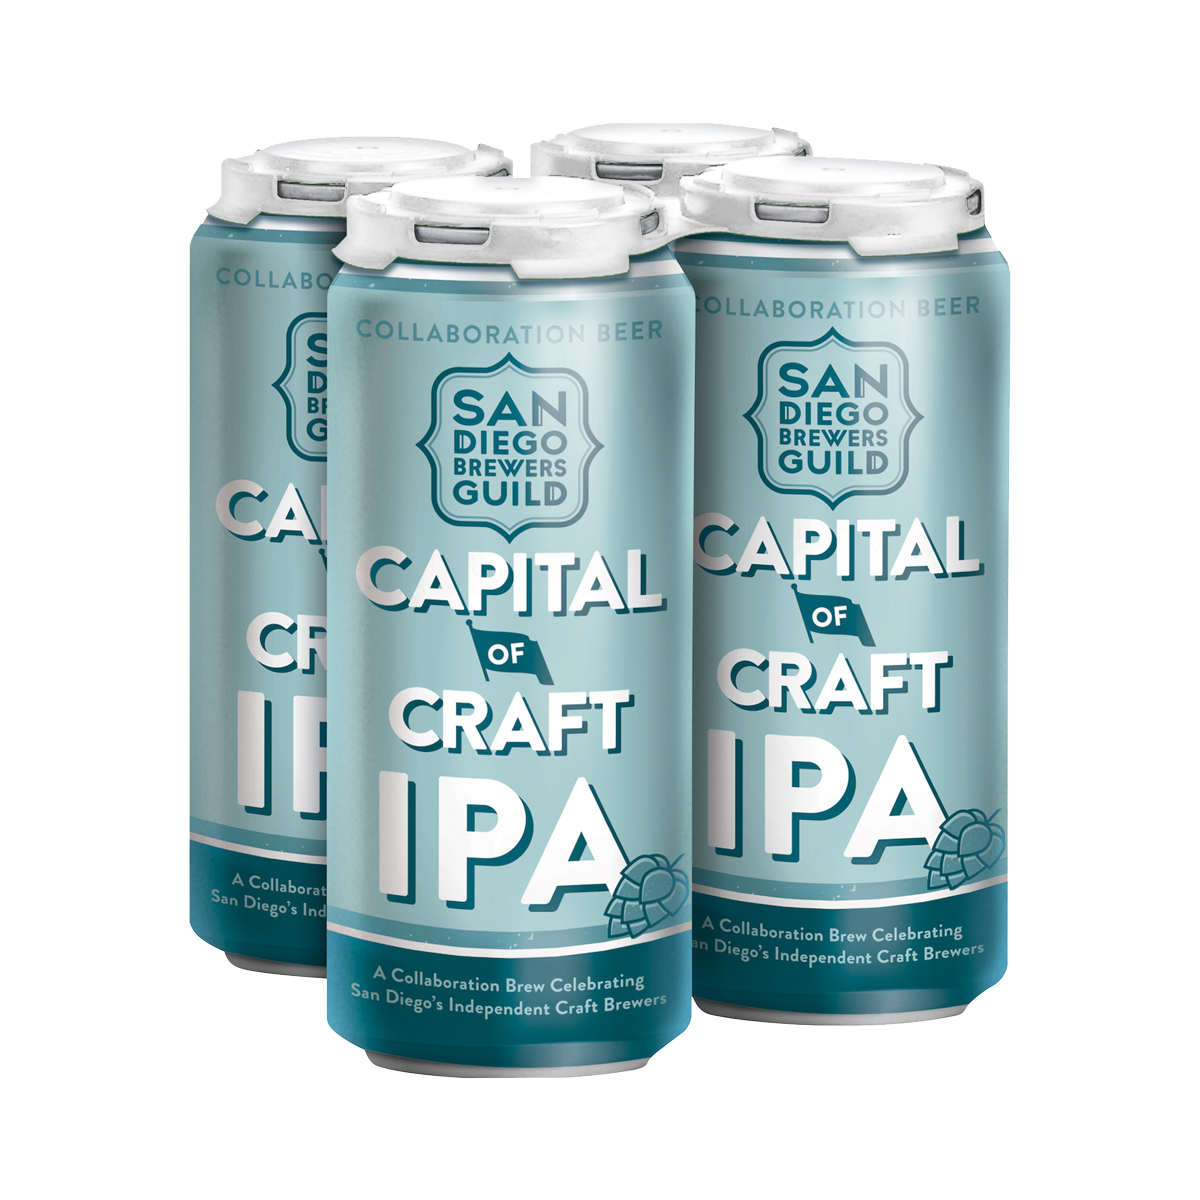 Capital of Craft IPA